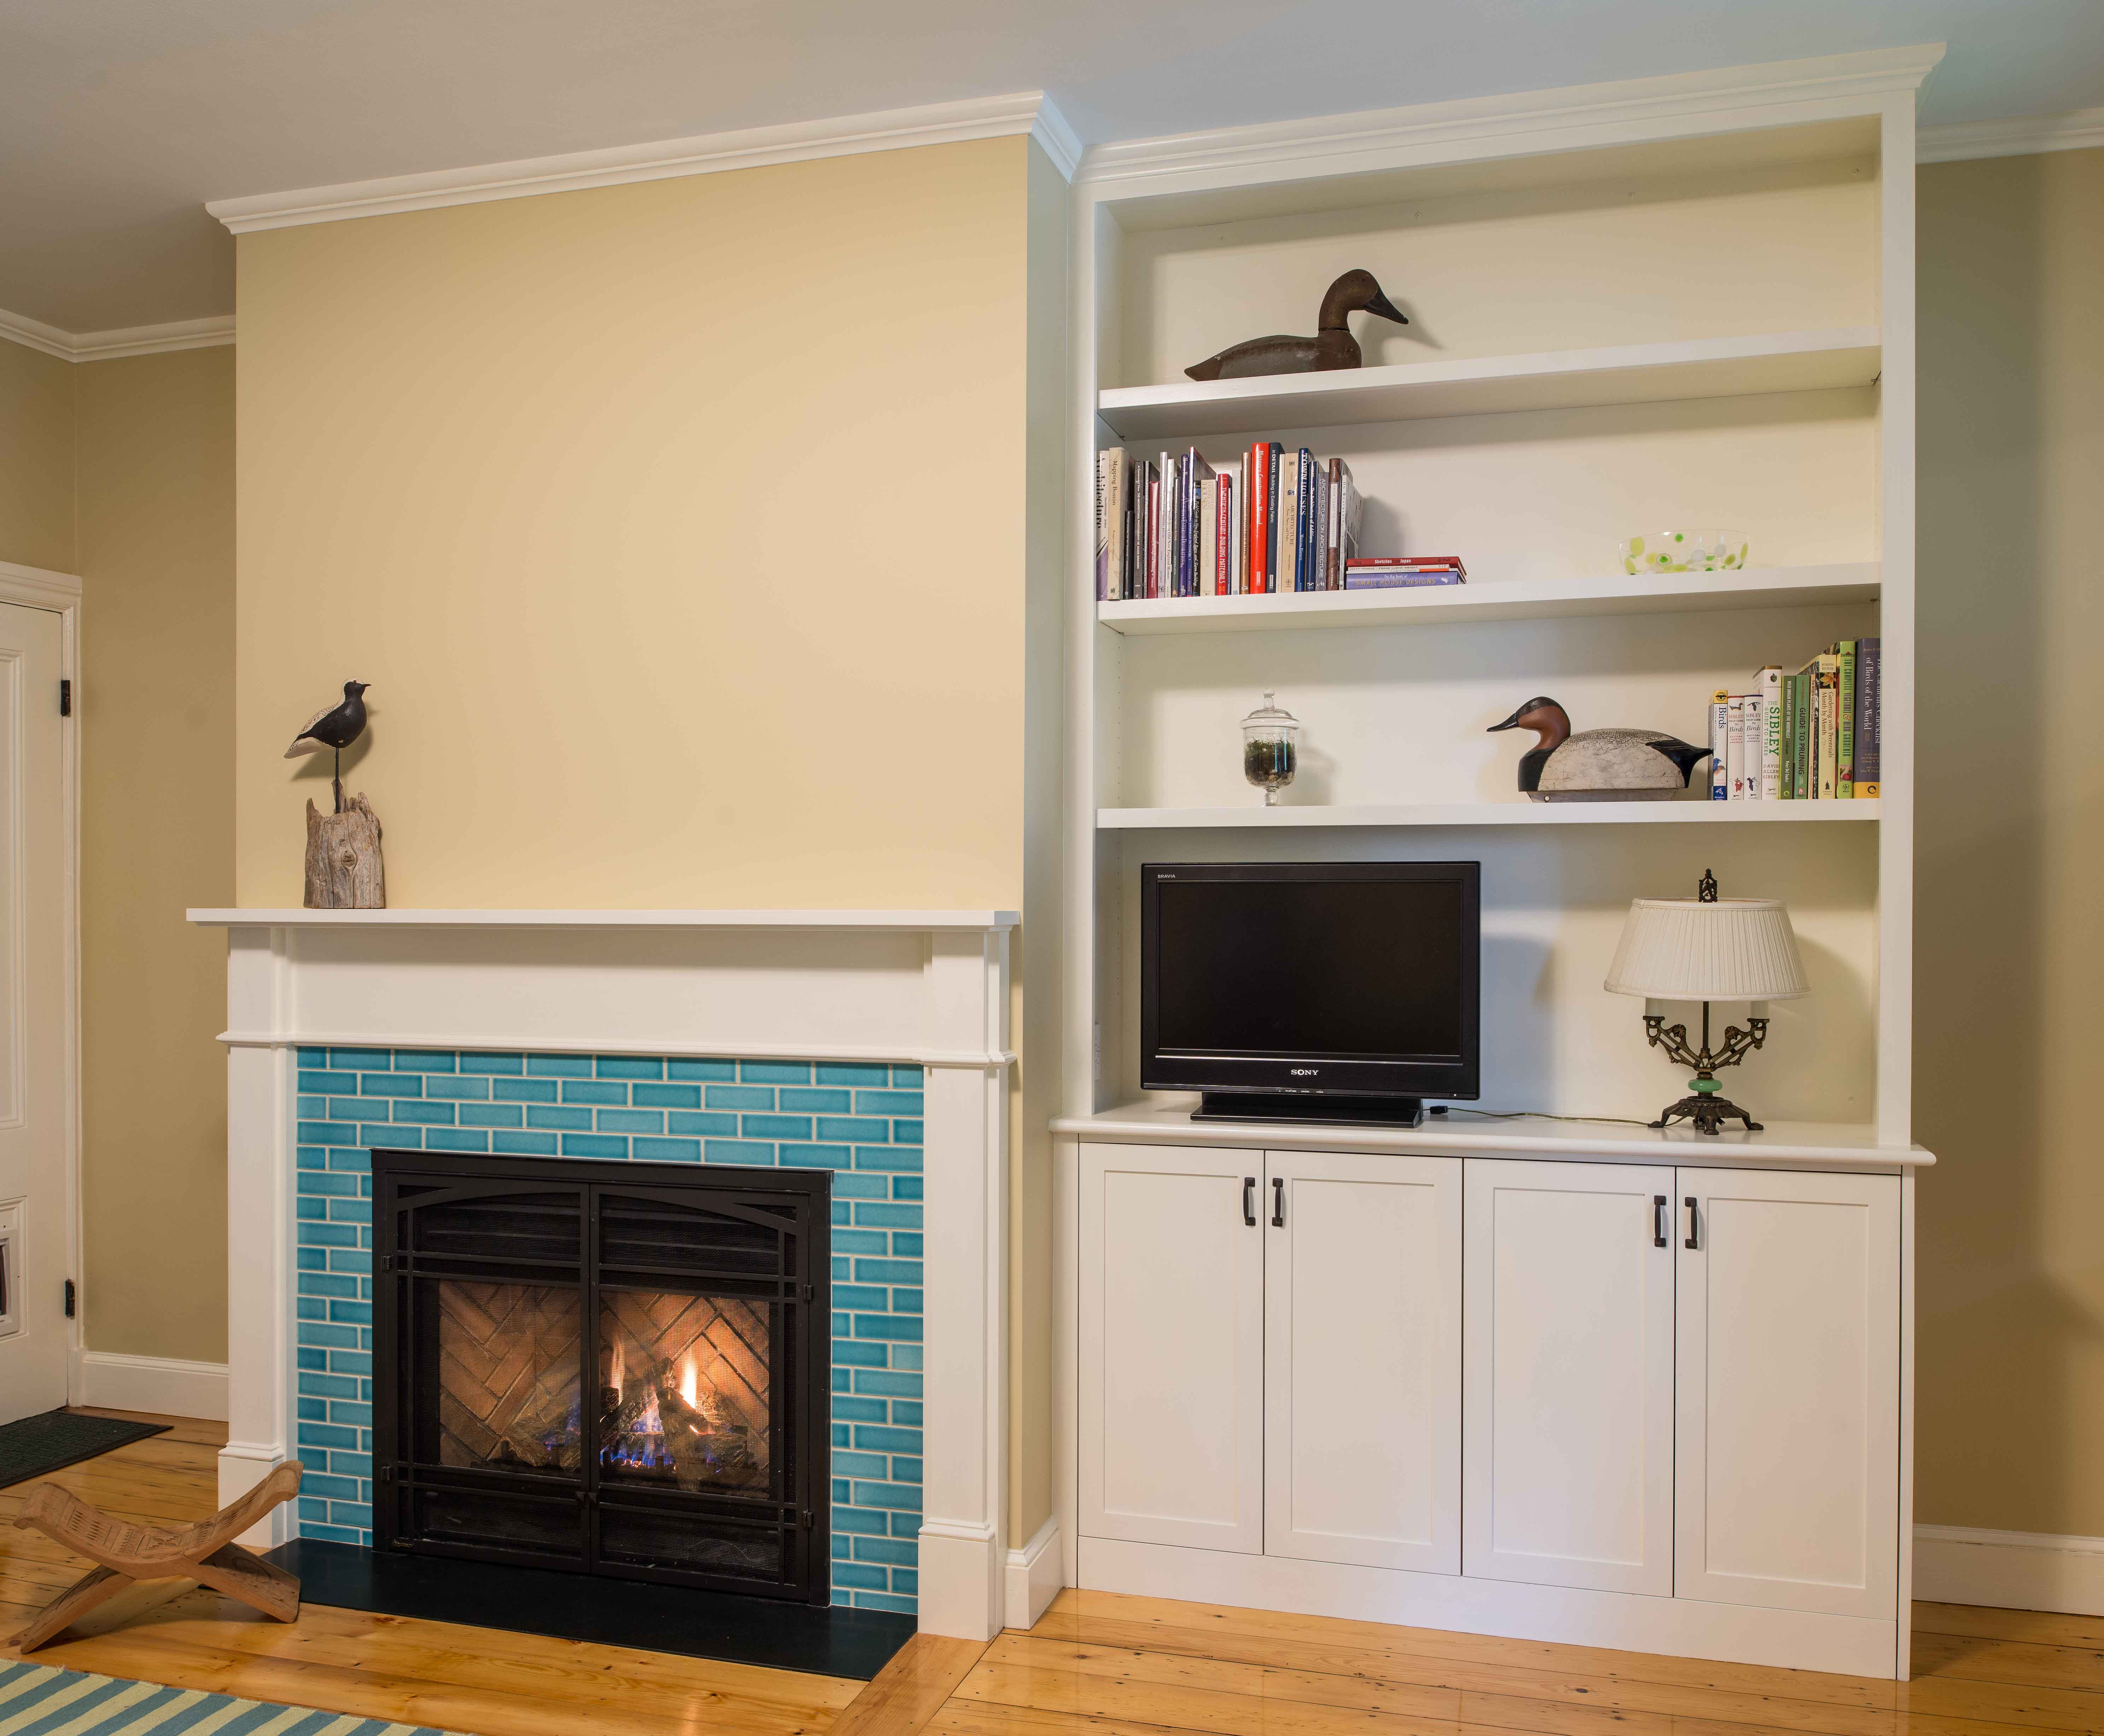 How To Choose The Best Gas Fireplace Surrounds Fireplace Design Ideas